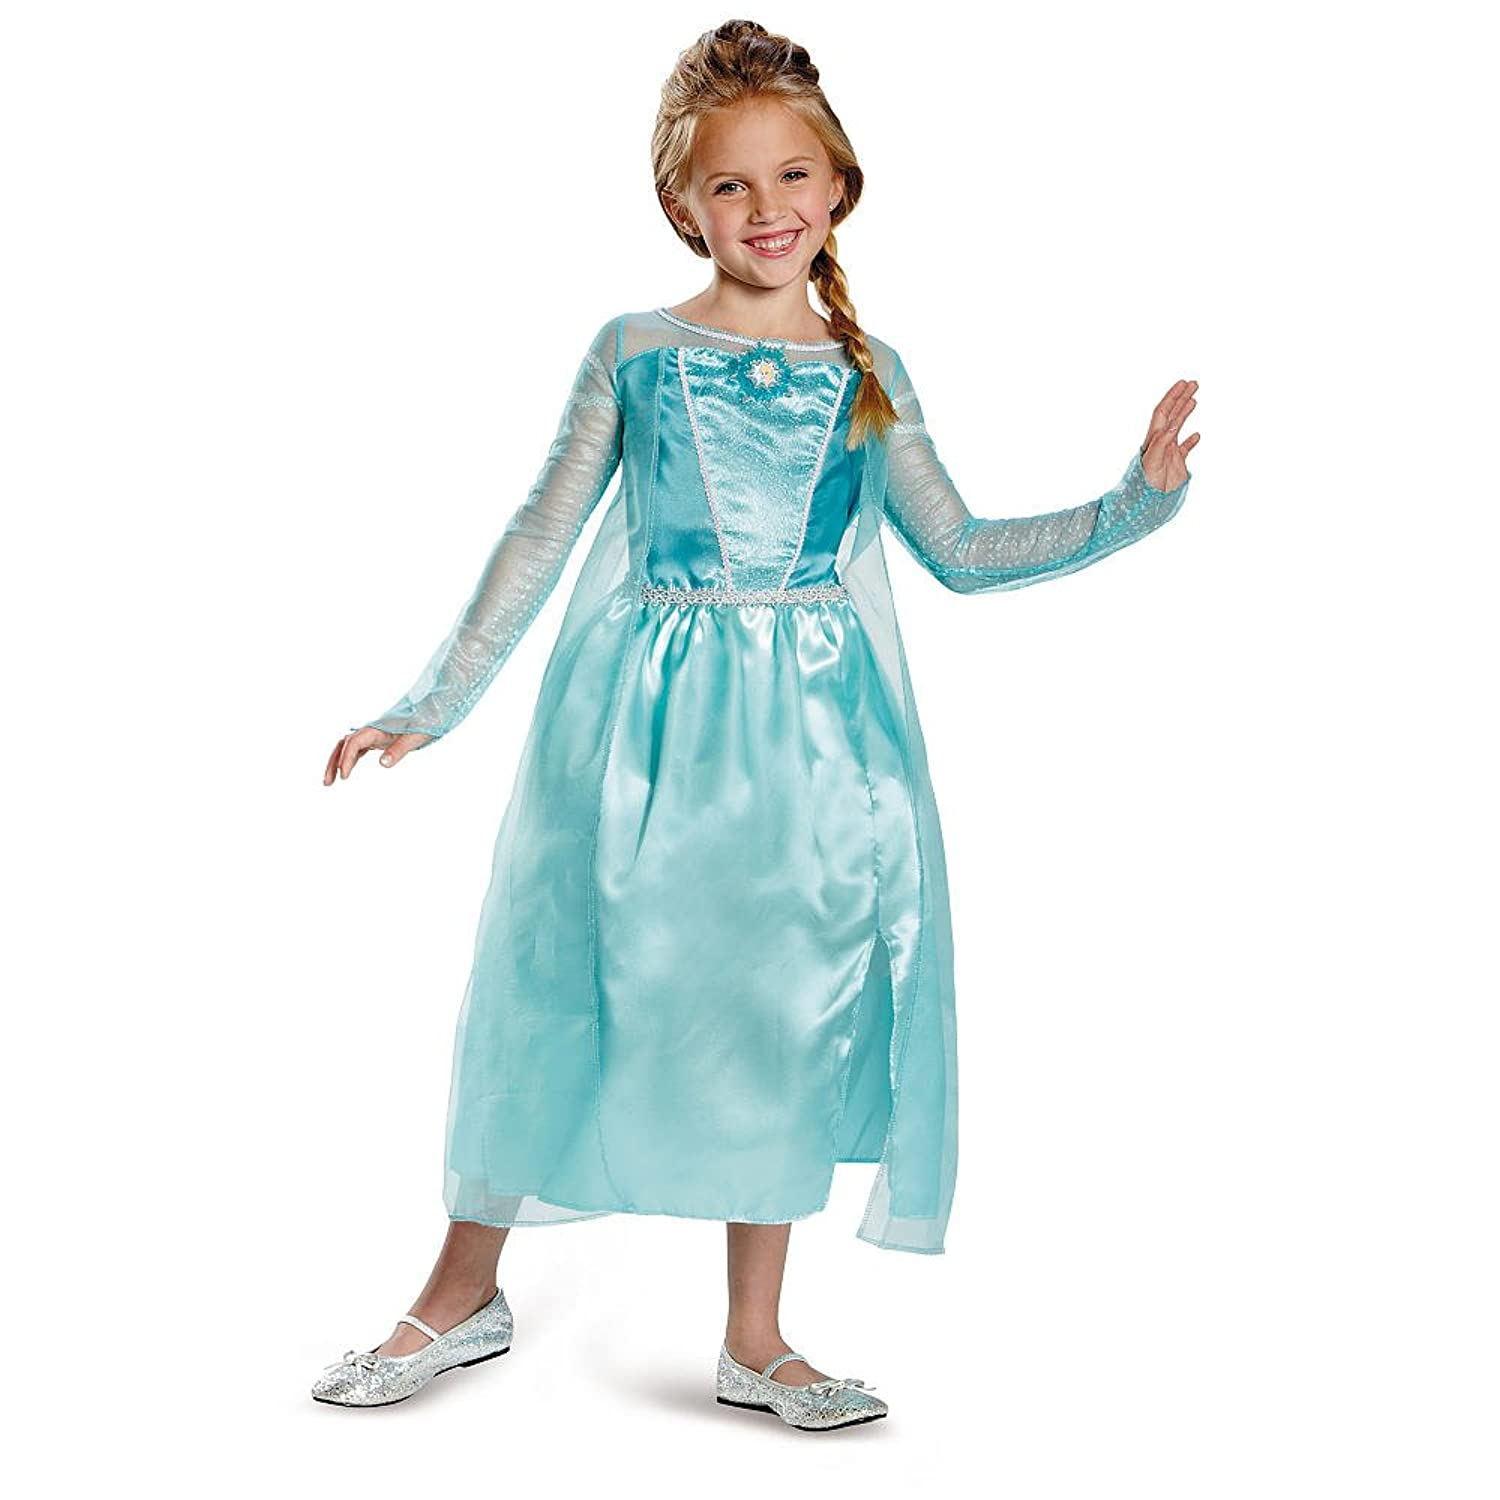 Disney Frozen Elsa Halloween Costume Size Small (4-6X) kids girls elsa dress princess tutu dress baby girl christmas halloween cosplay costume children party festival birthday dresses